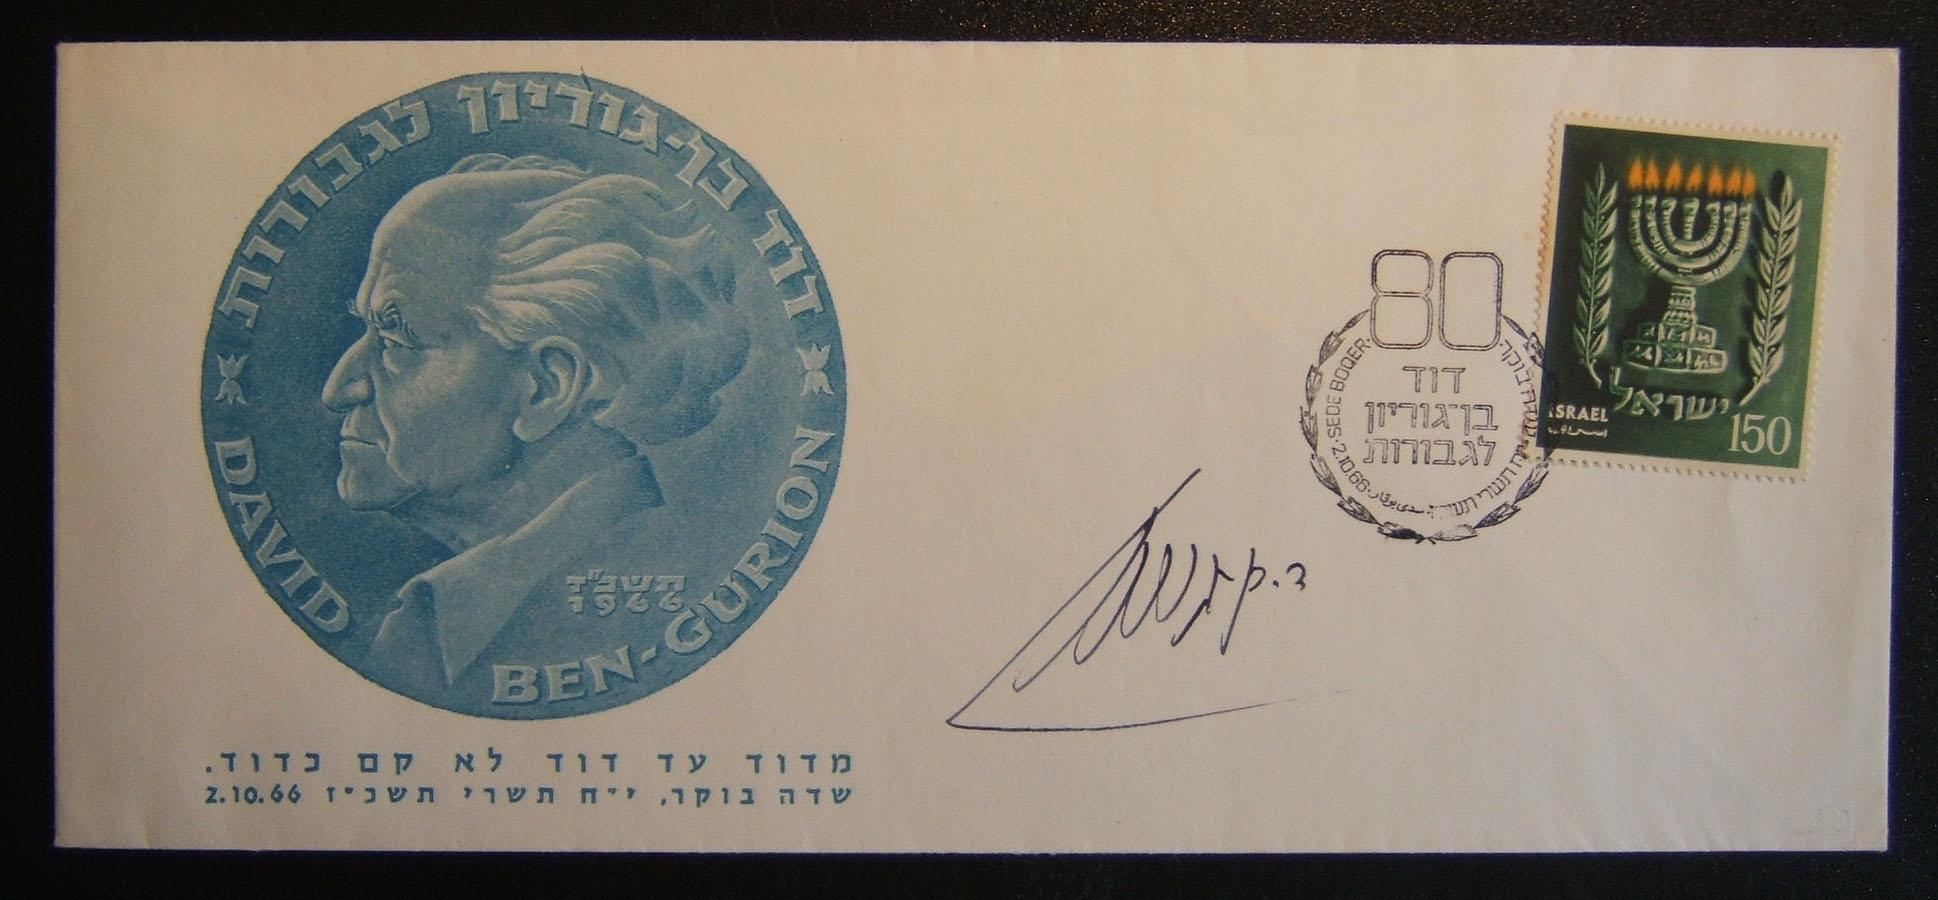 David Ben-Gurion's 80th anniversary signed envelope, 1966: franked by 150 Pr 1955 Independence Day stamp (Ba 106) and cancelled by special celebratory cachet. Cover bears image of